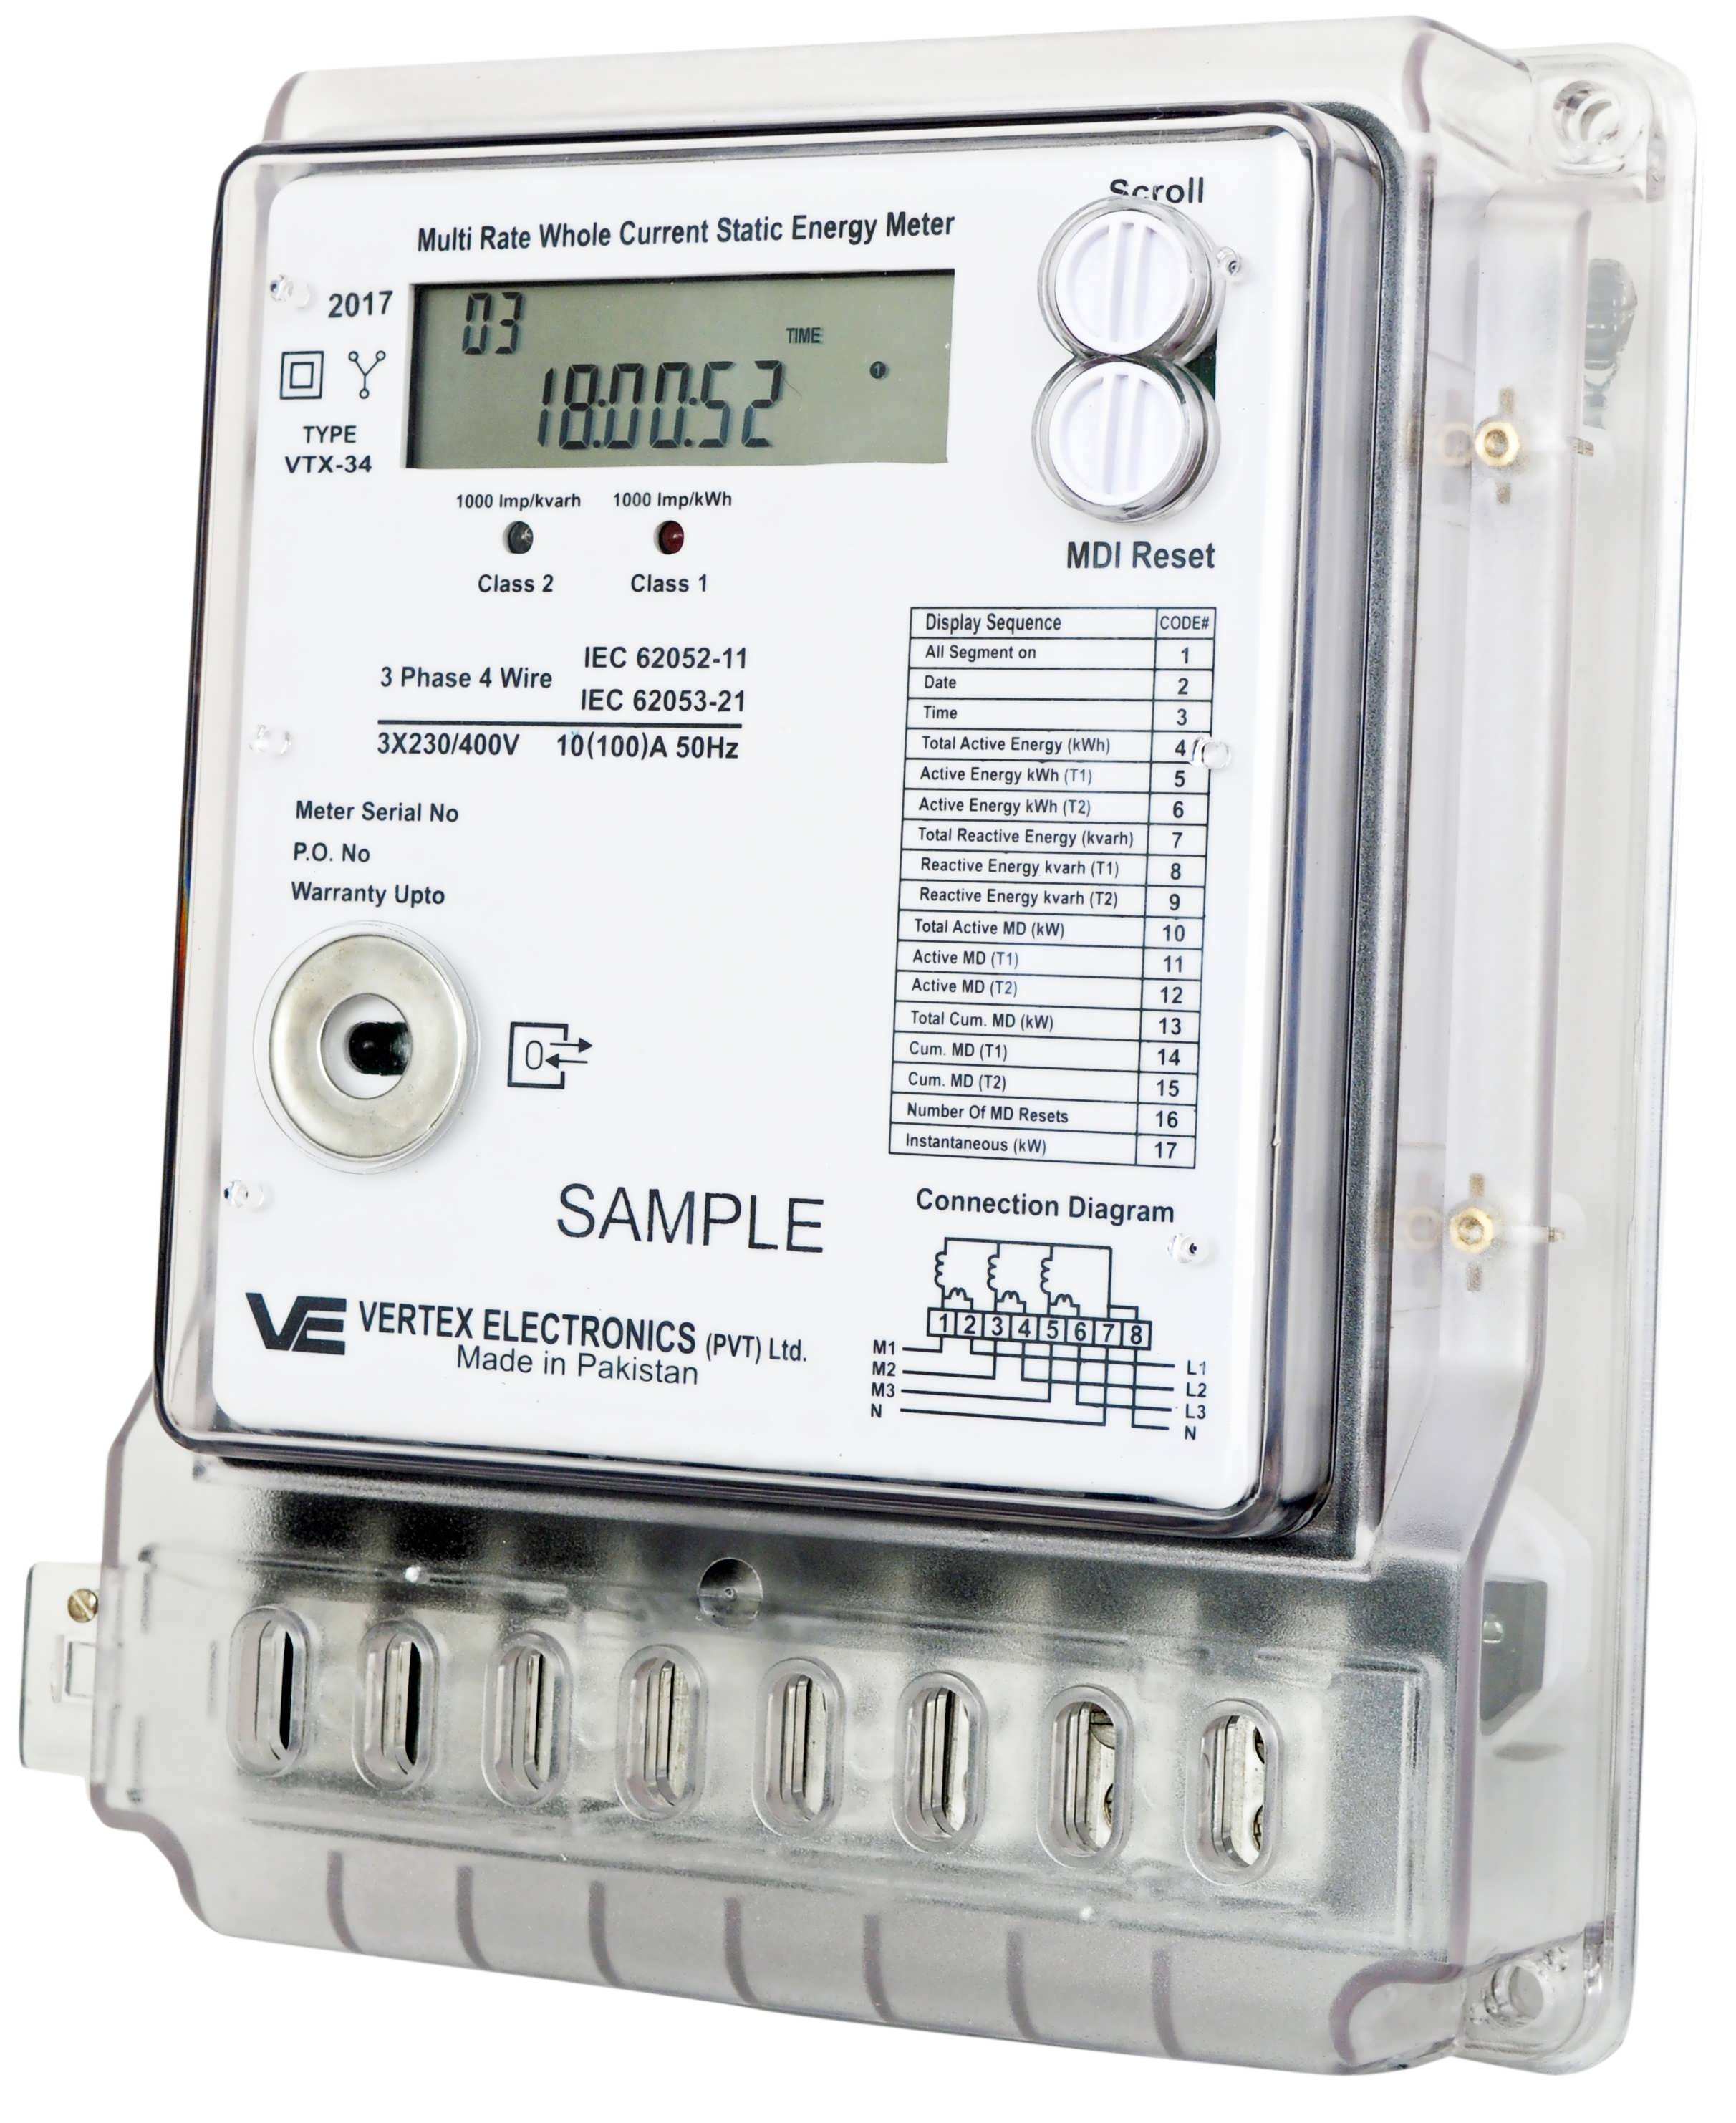 3 phase electric meter wiring diagram pid temperature controller current transformer ammeter ct coil